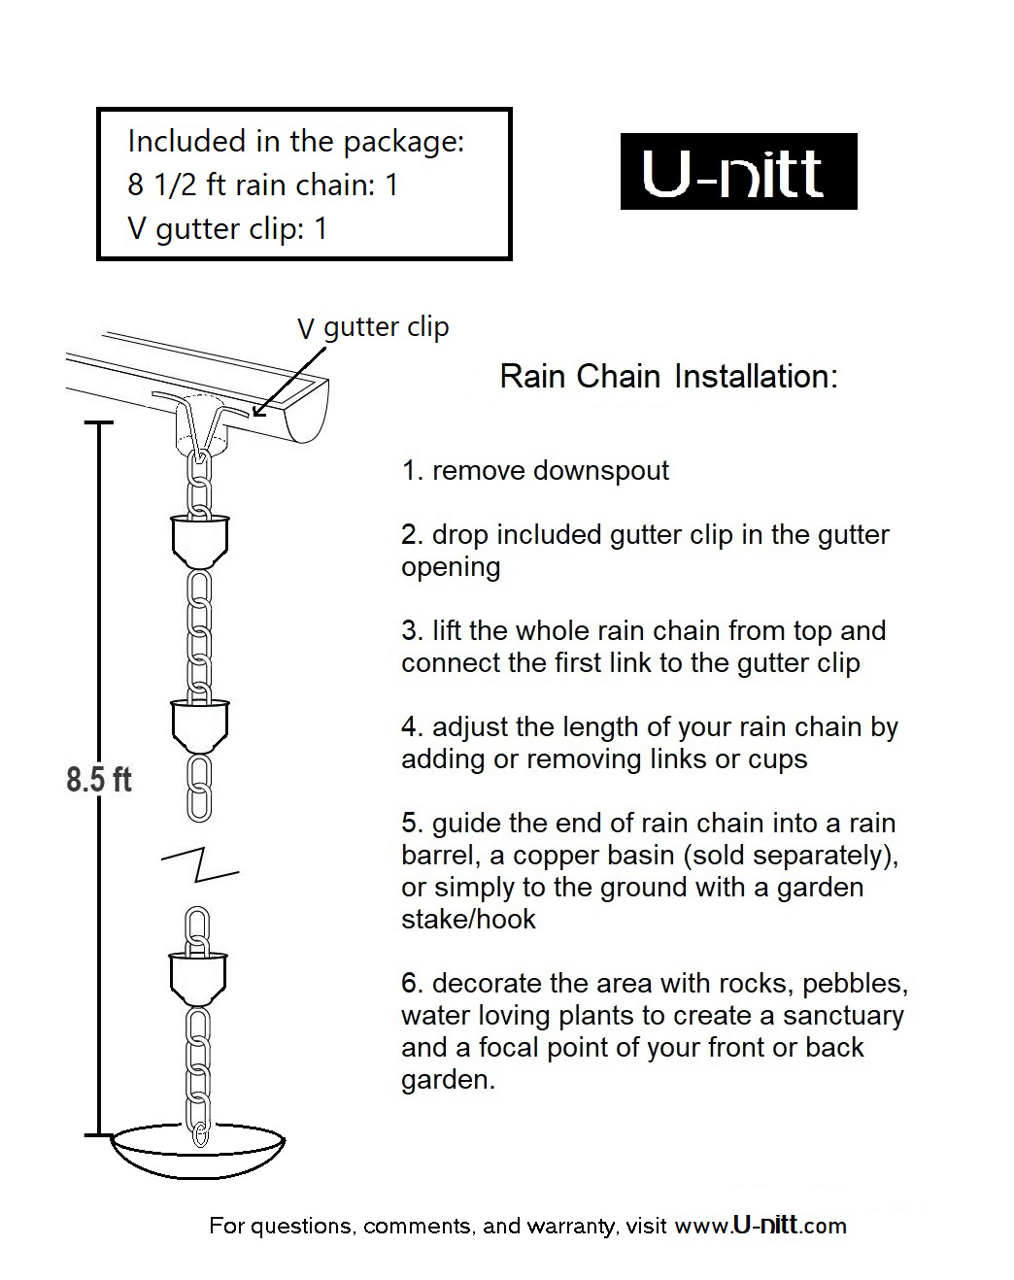 Picture of U-nitt pure Copper Rain Chain: star flower 8 - 1/2 ft #3147